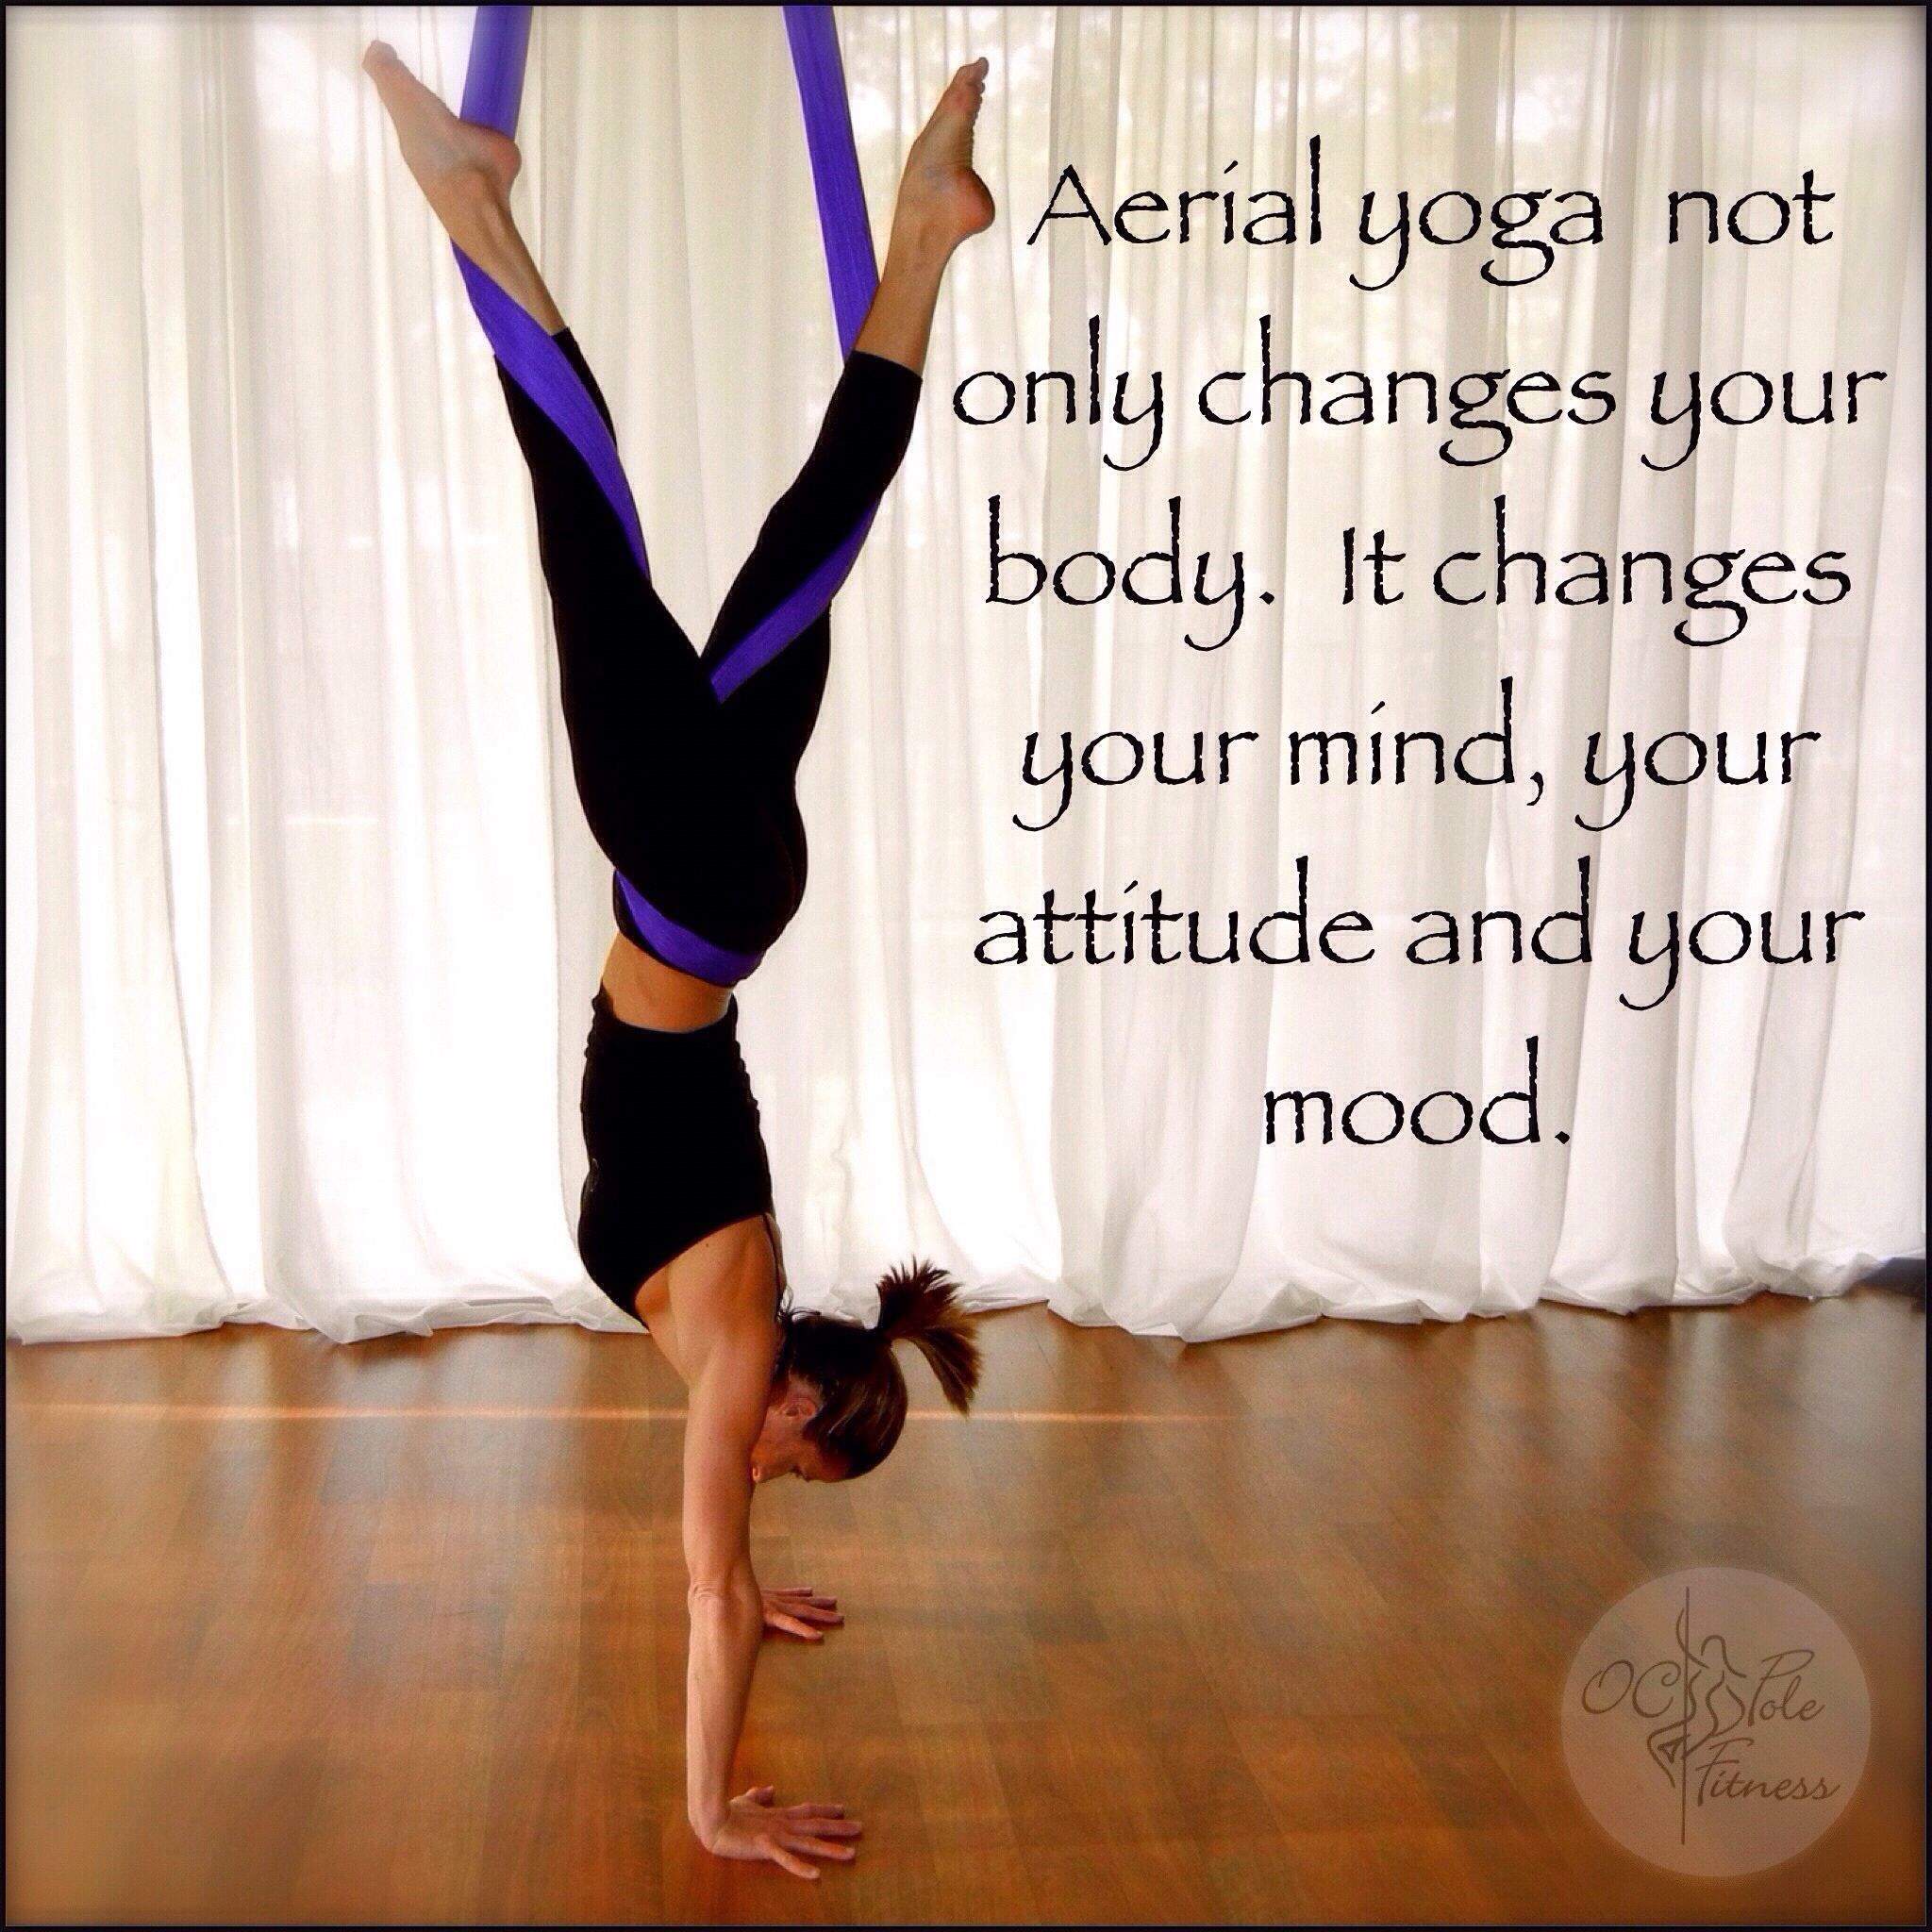 Change your body and mood with aerial yoga.